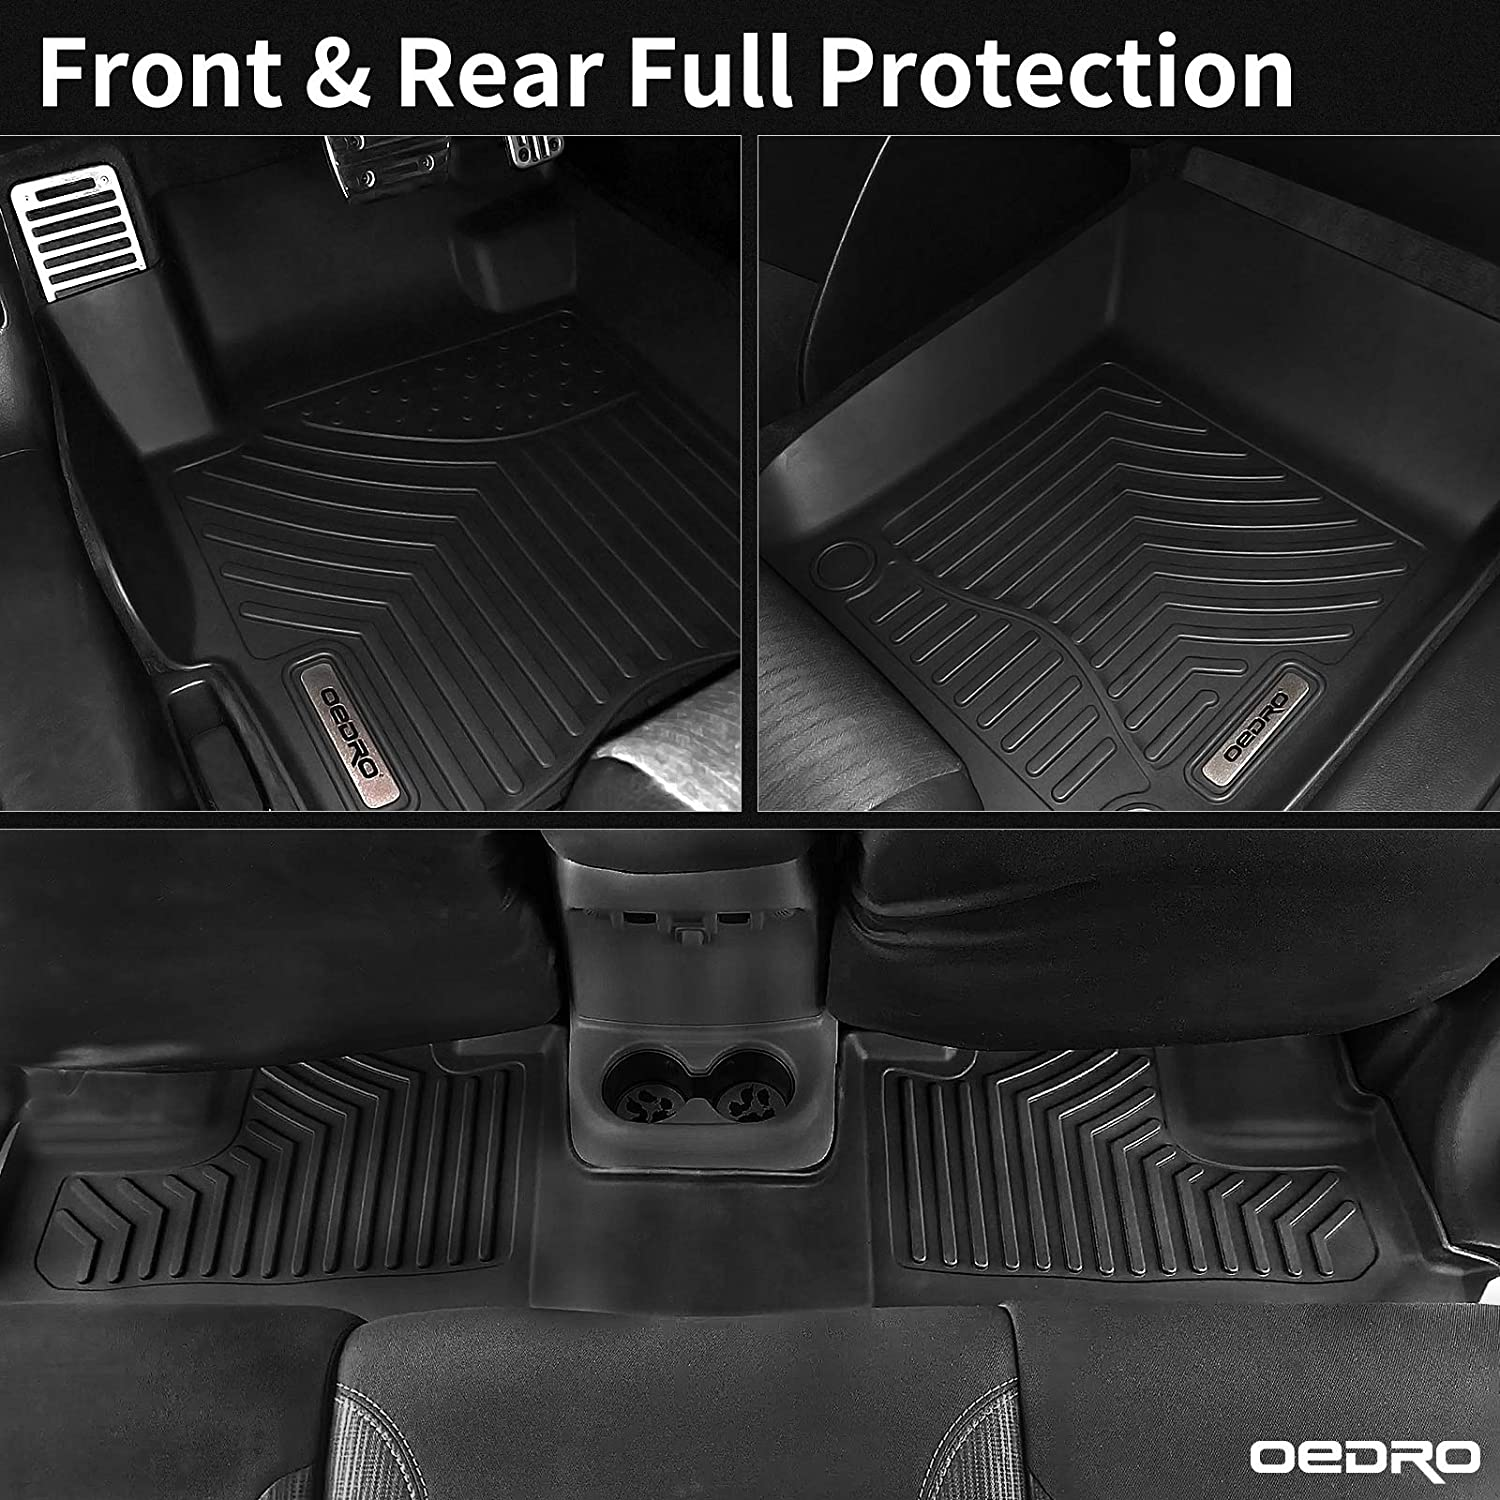 All Weather Guard Front /& Rear 2 Row Liner Set Black TPE Custom Fit oEdRo Floor Mats Compatible with 2020 Toyota Corolla Hybrid